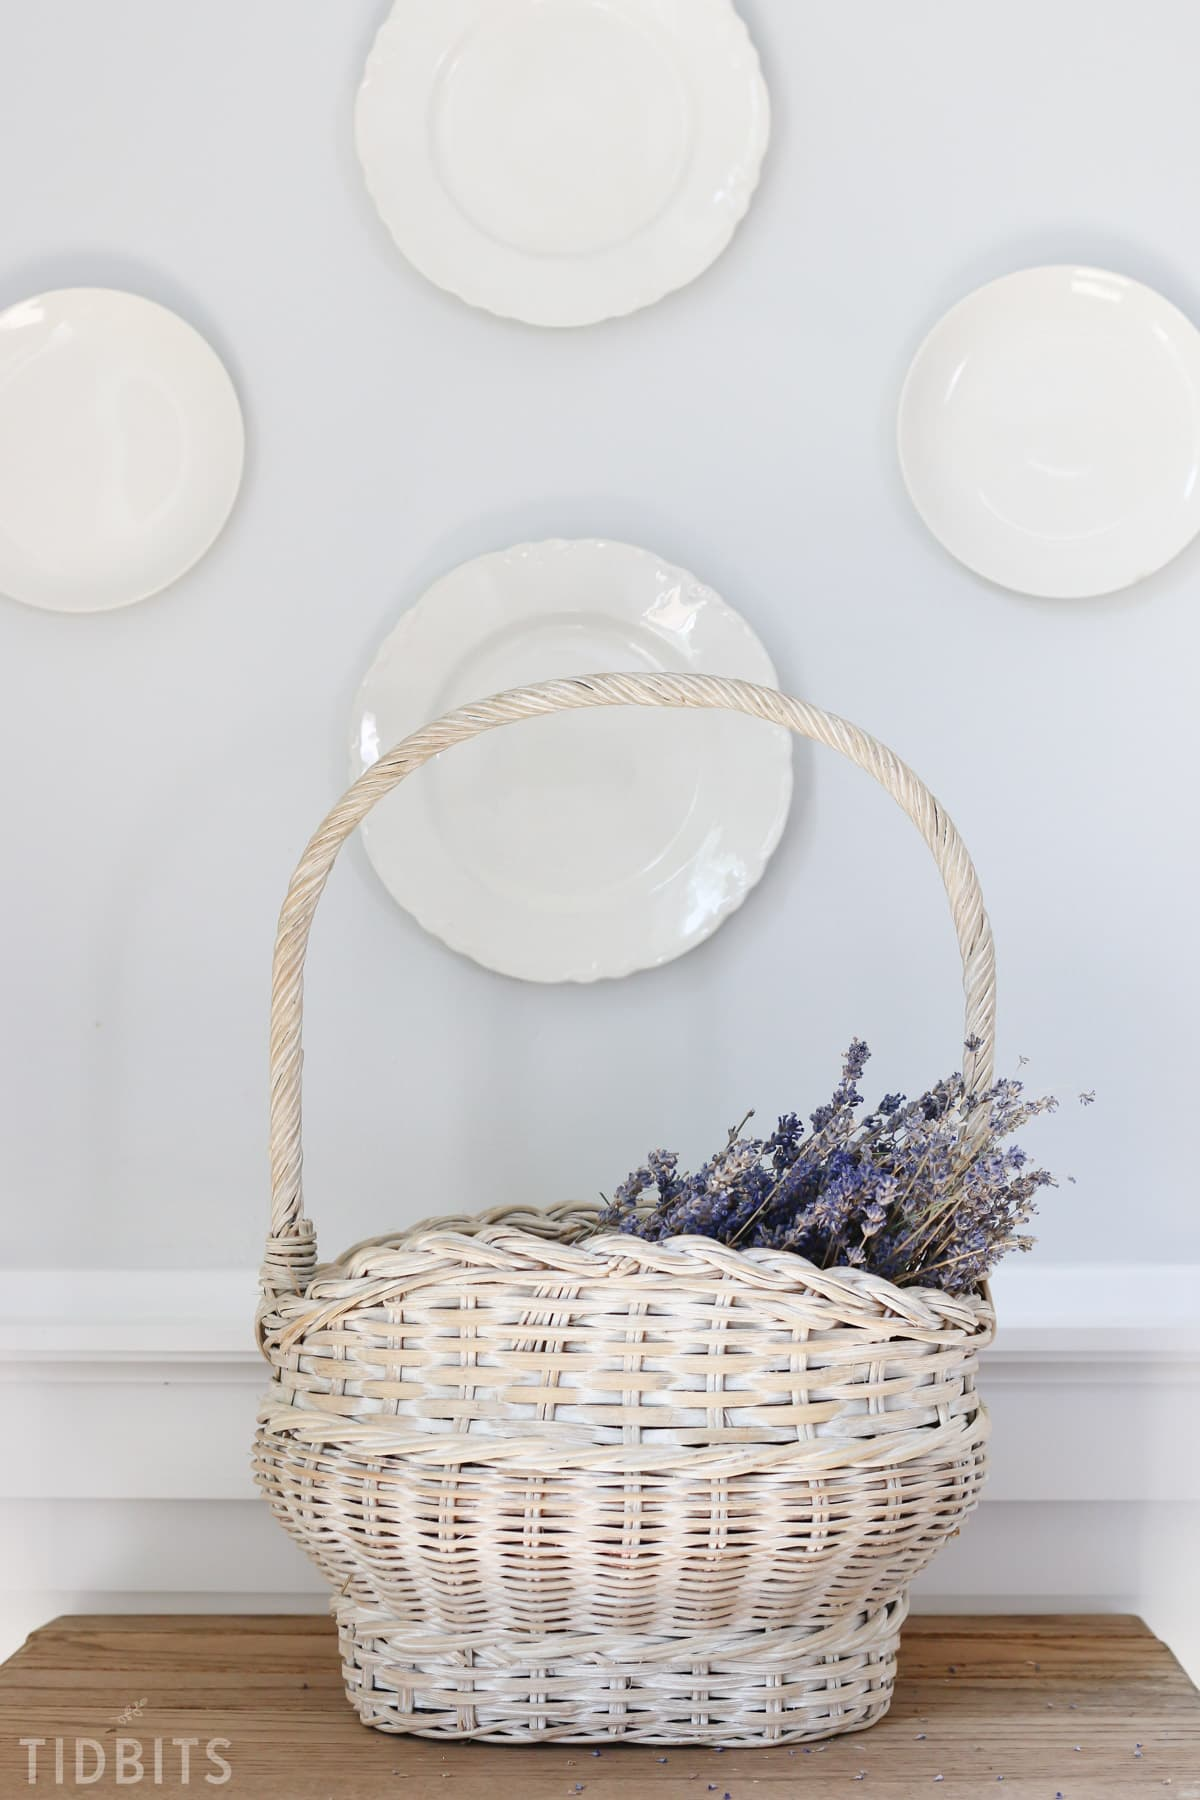 Decorating with Lavendar